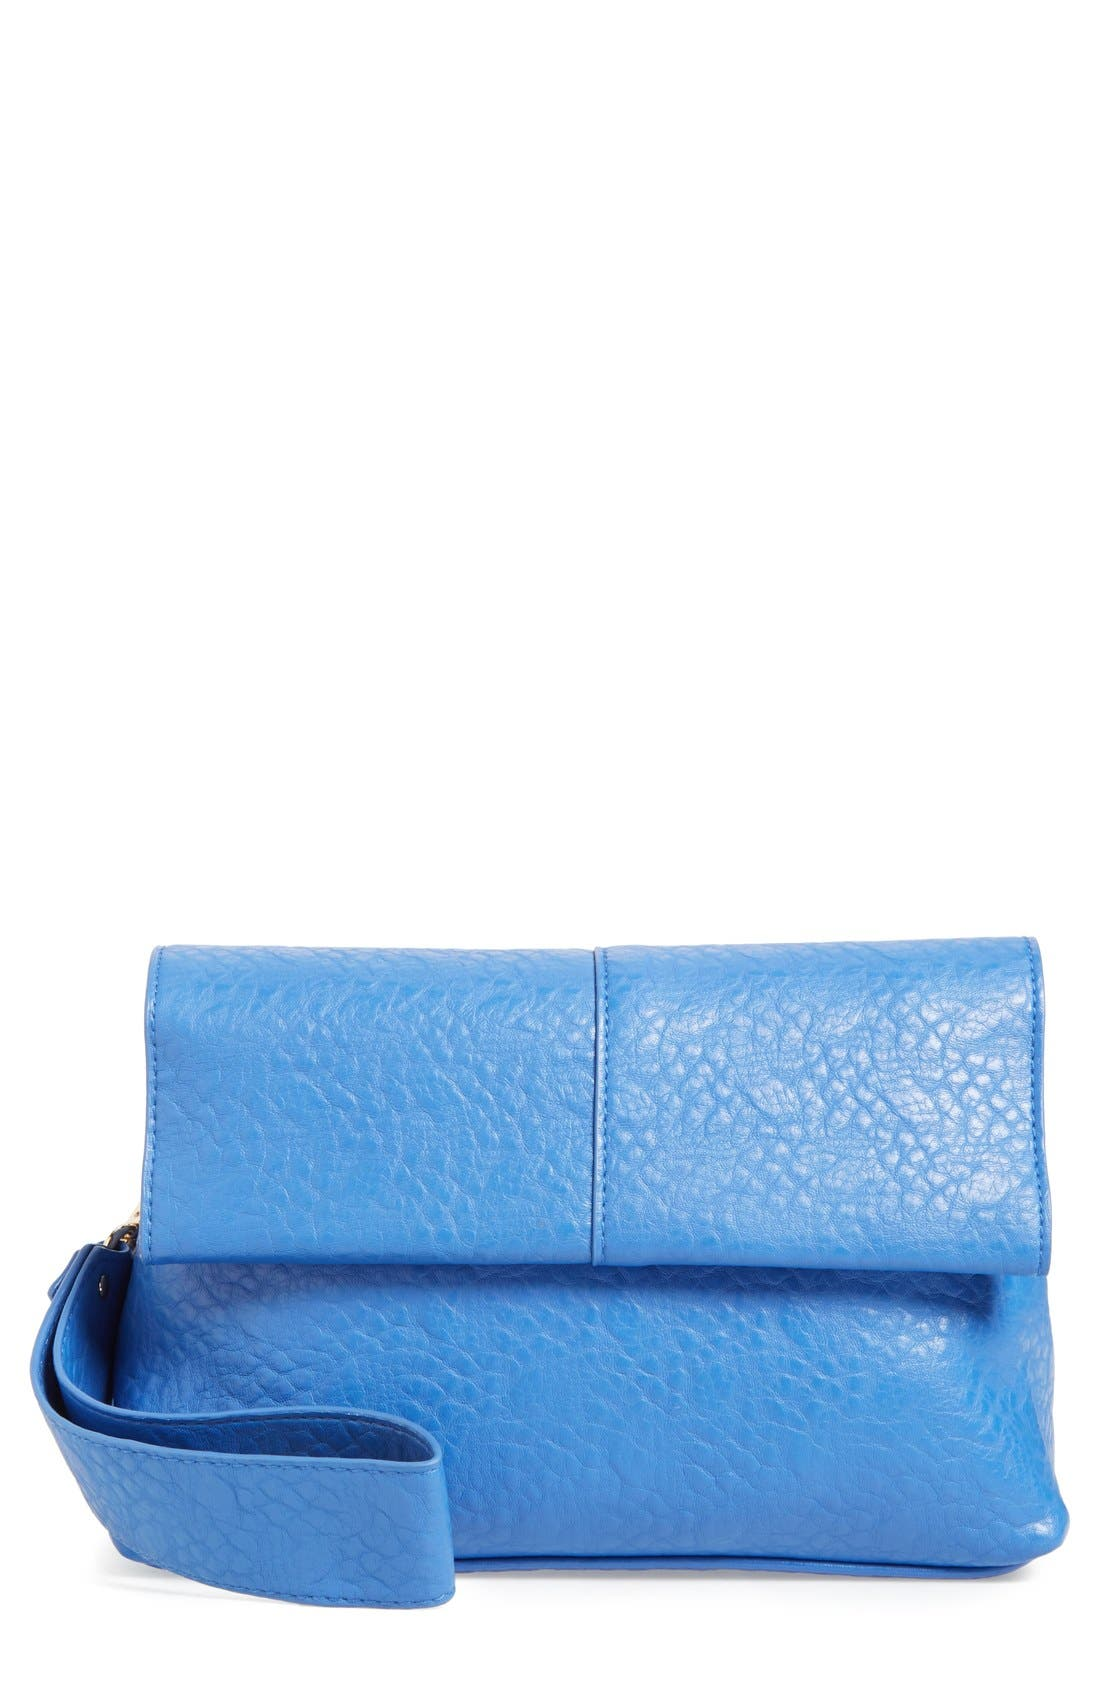 Main Image - POVERTY FLATS by rian Faux Leather Convertible Crossbody Bag